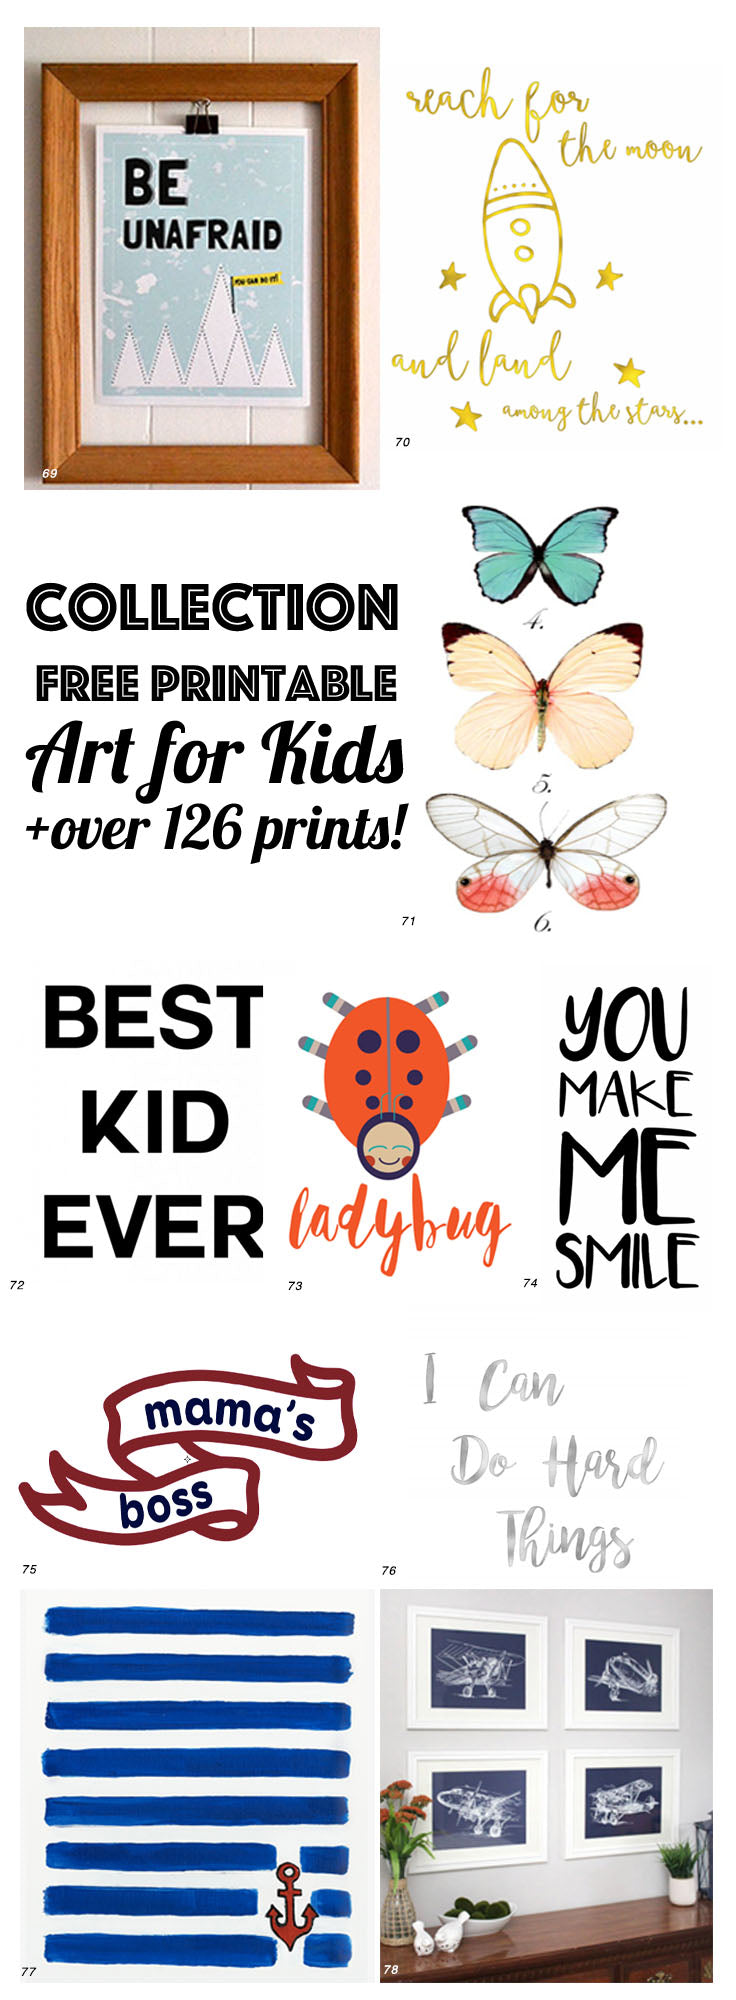 free printable art for kids - Free Printable Art For Kids